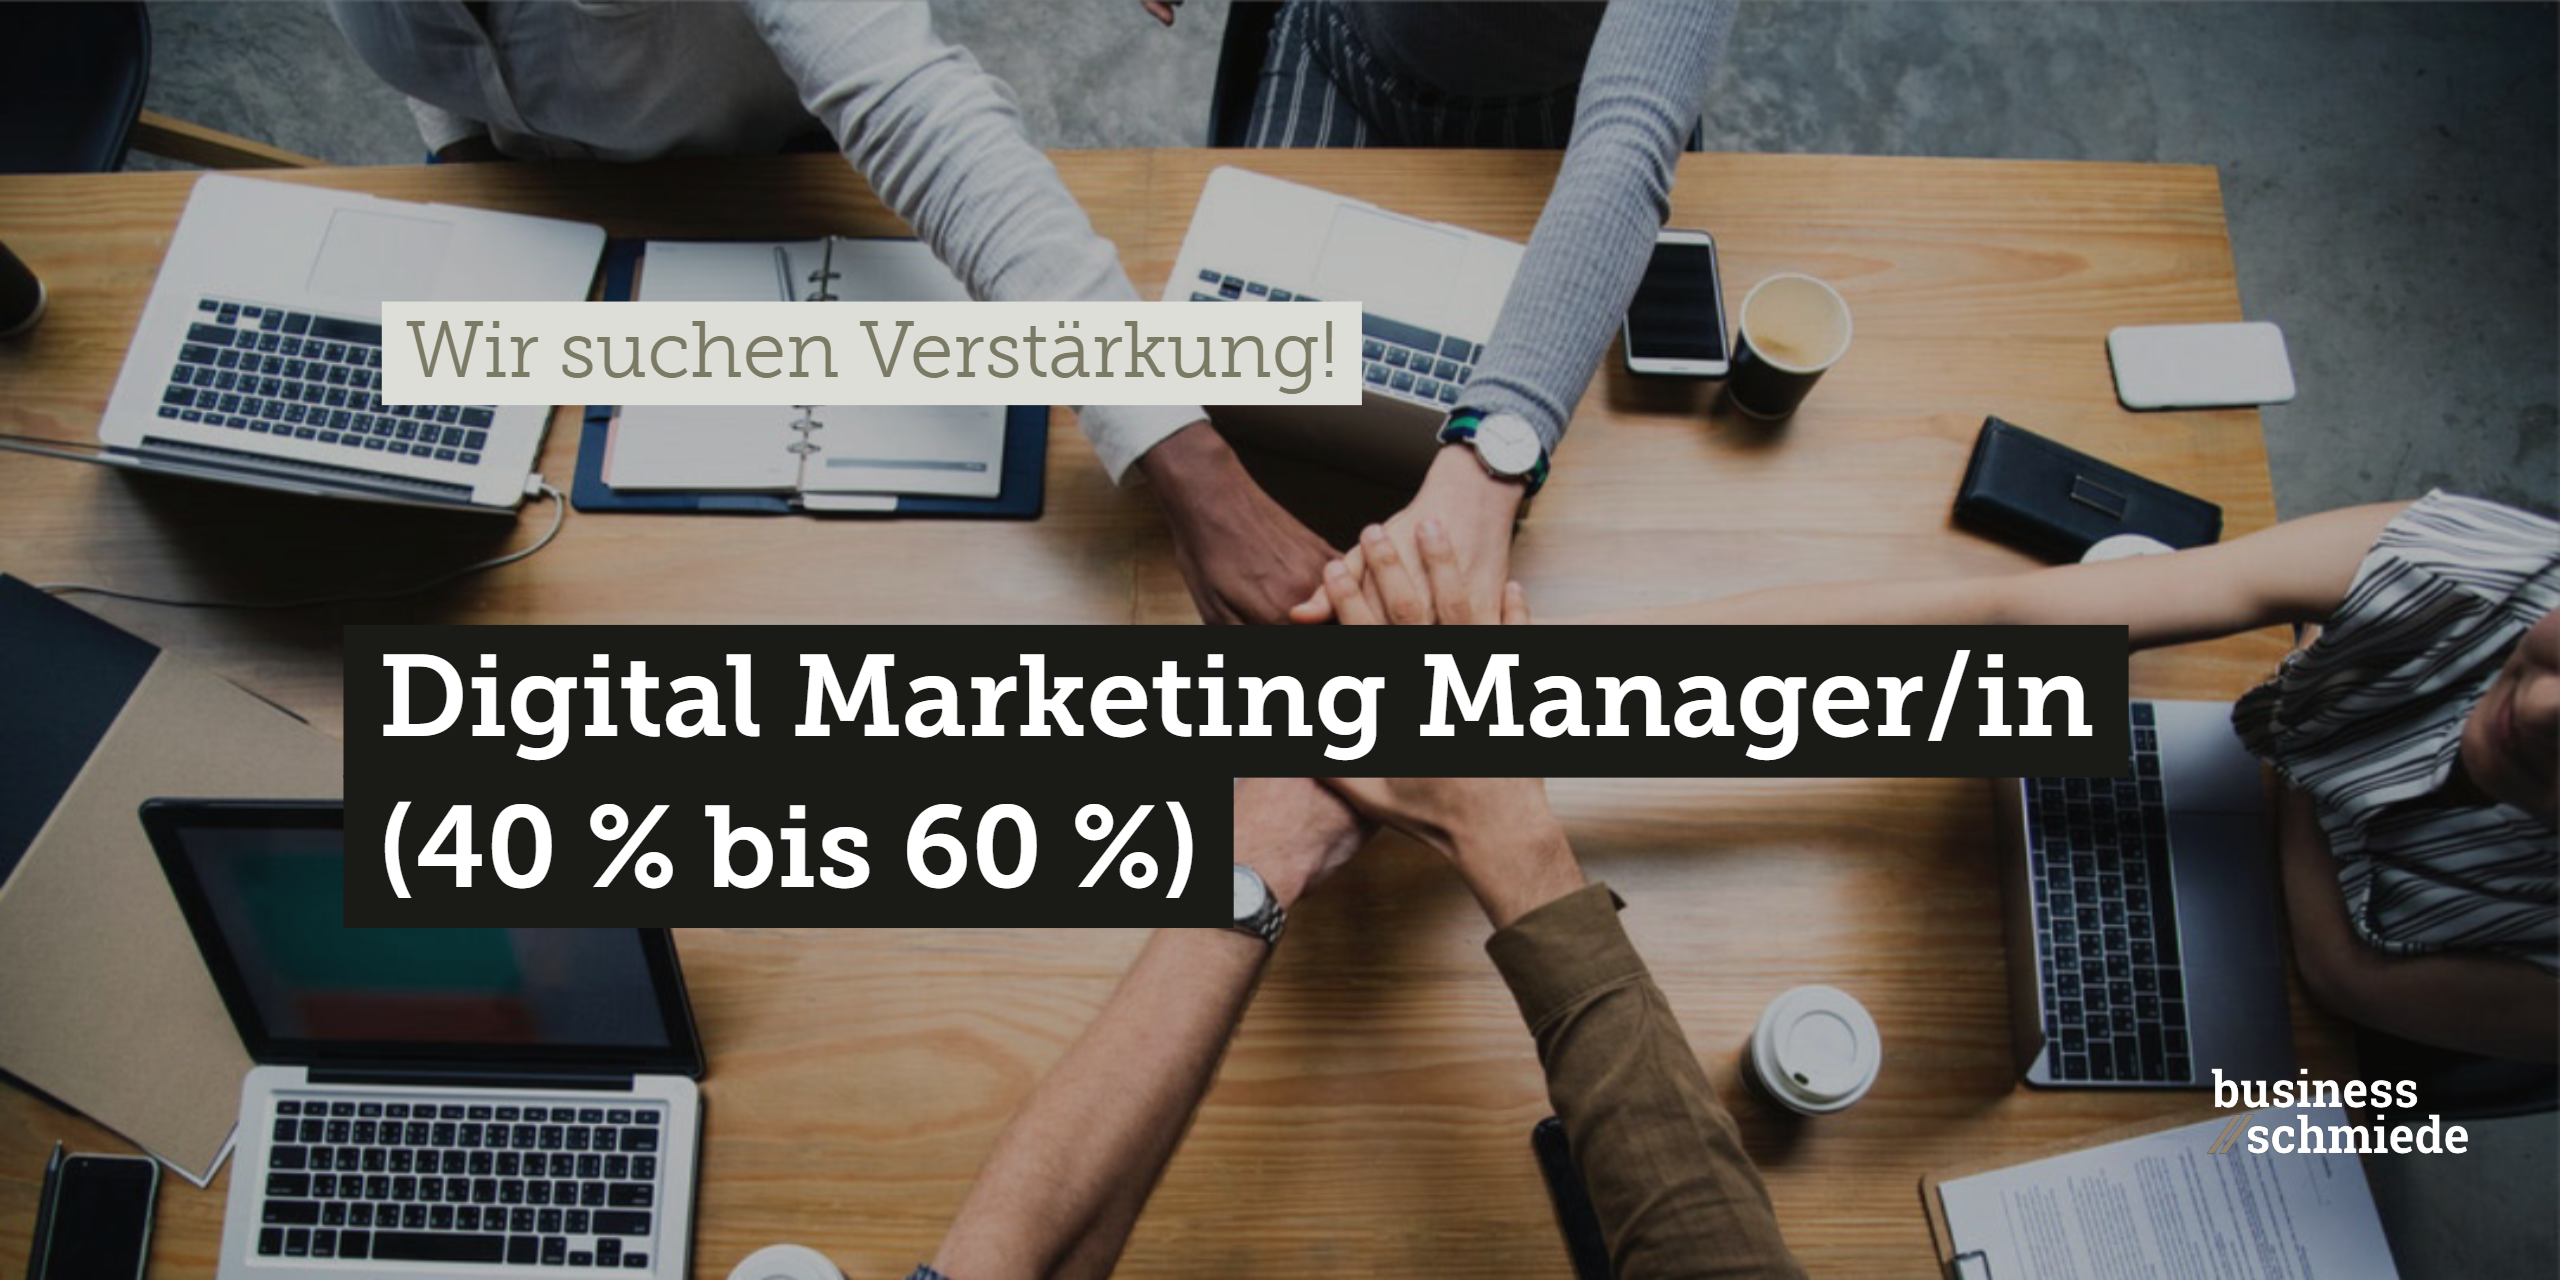 Gesucht: Digital Marketing Manager/in